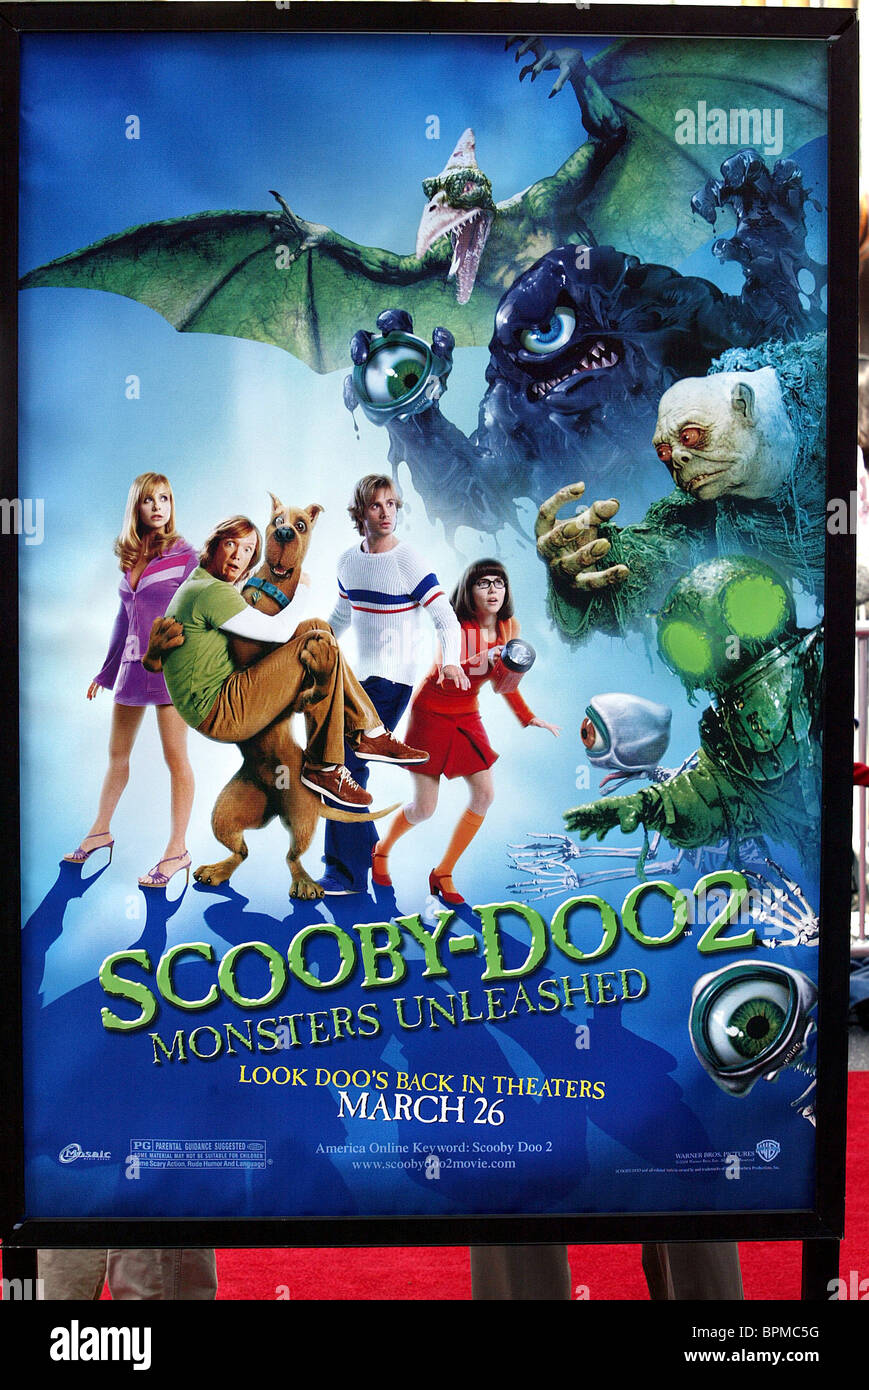 scoobydoo 2 monsters unleashed poster scoobydoo 2 us